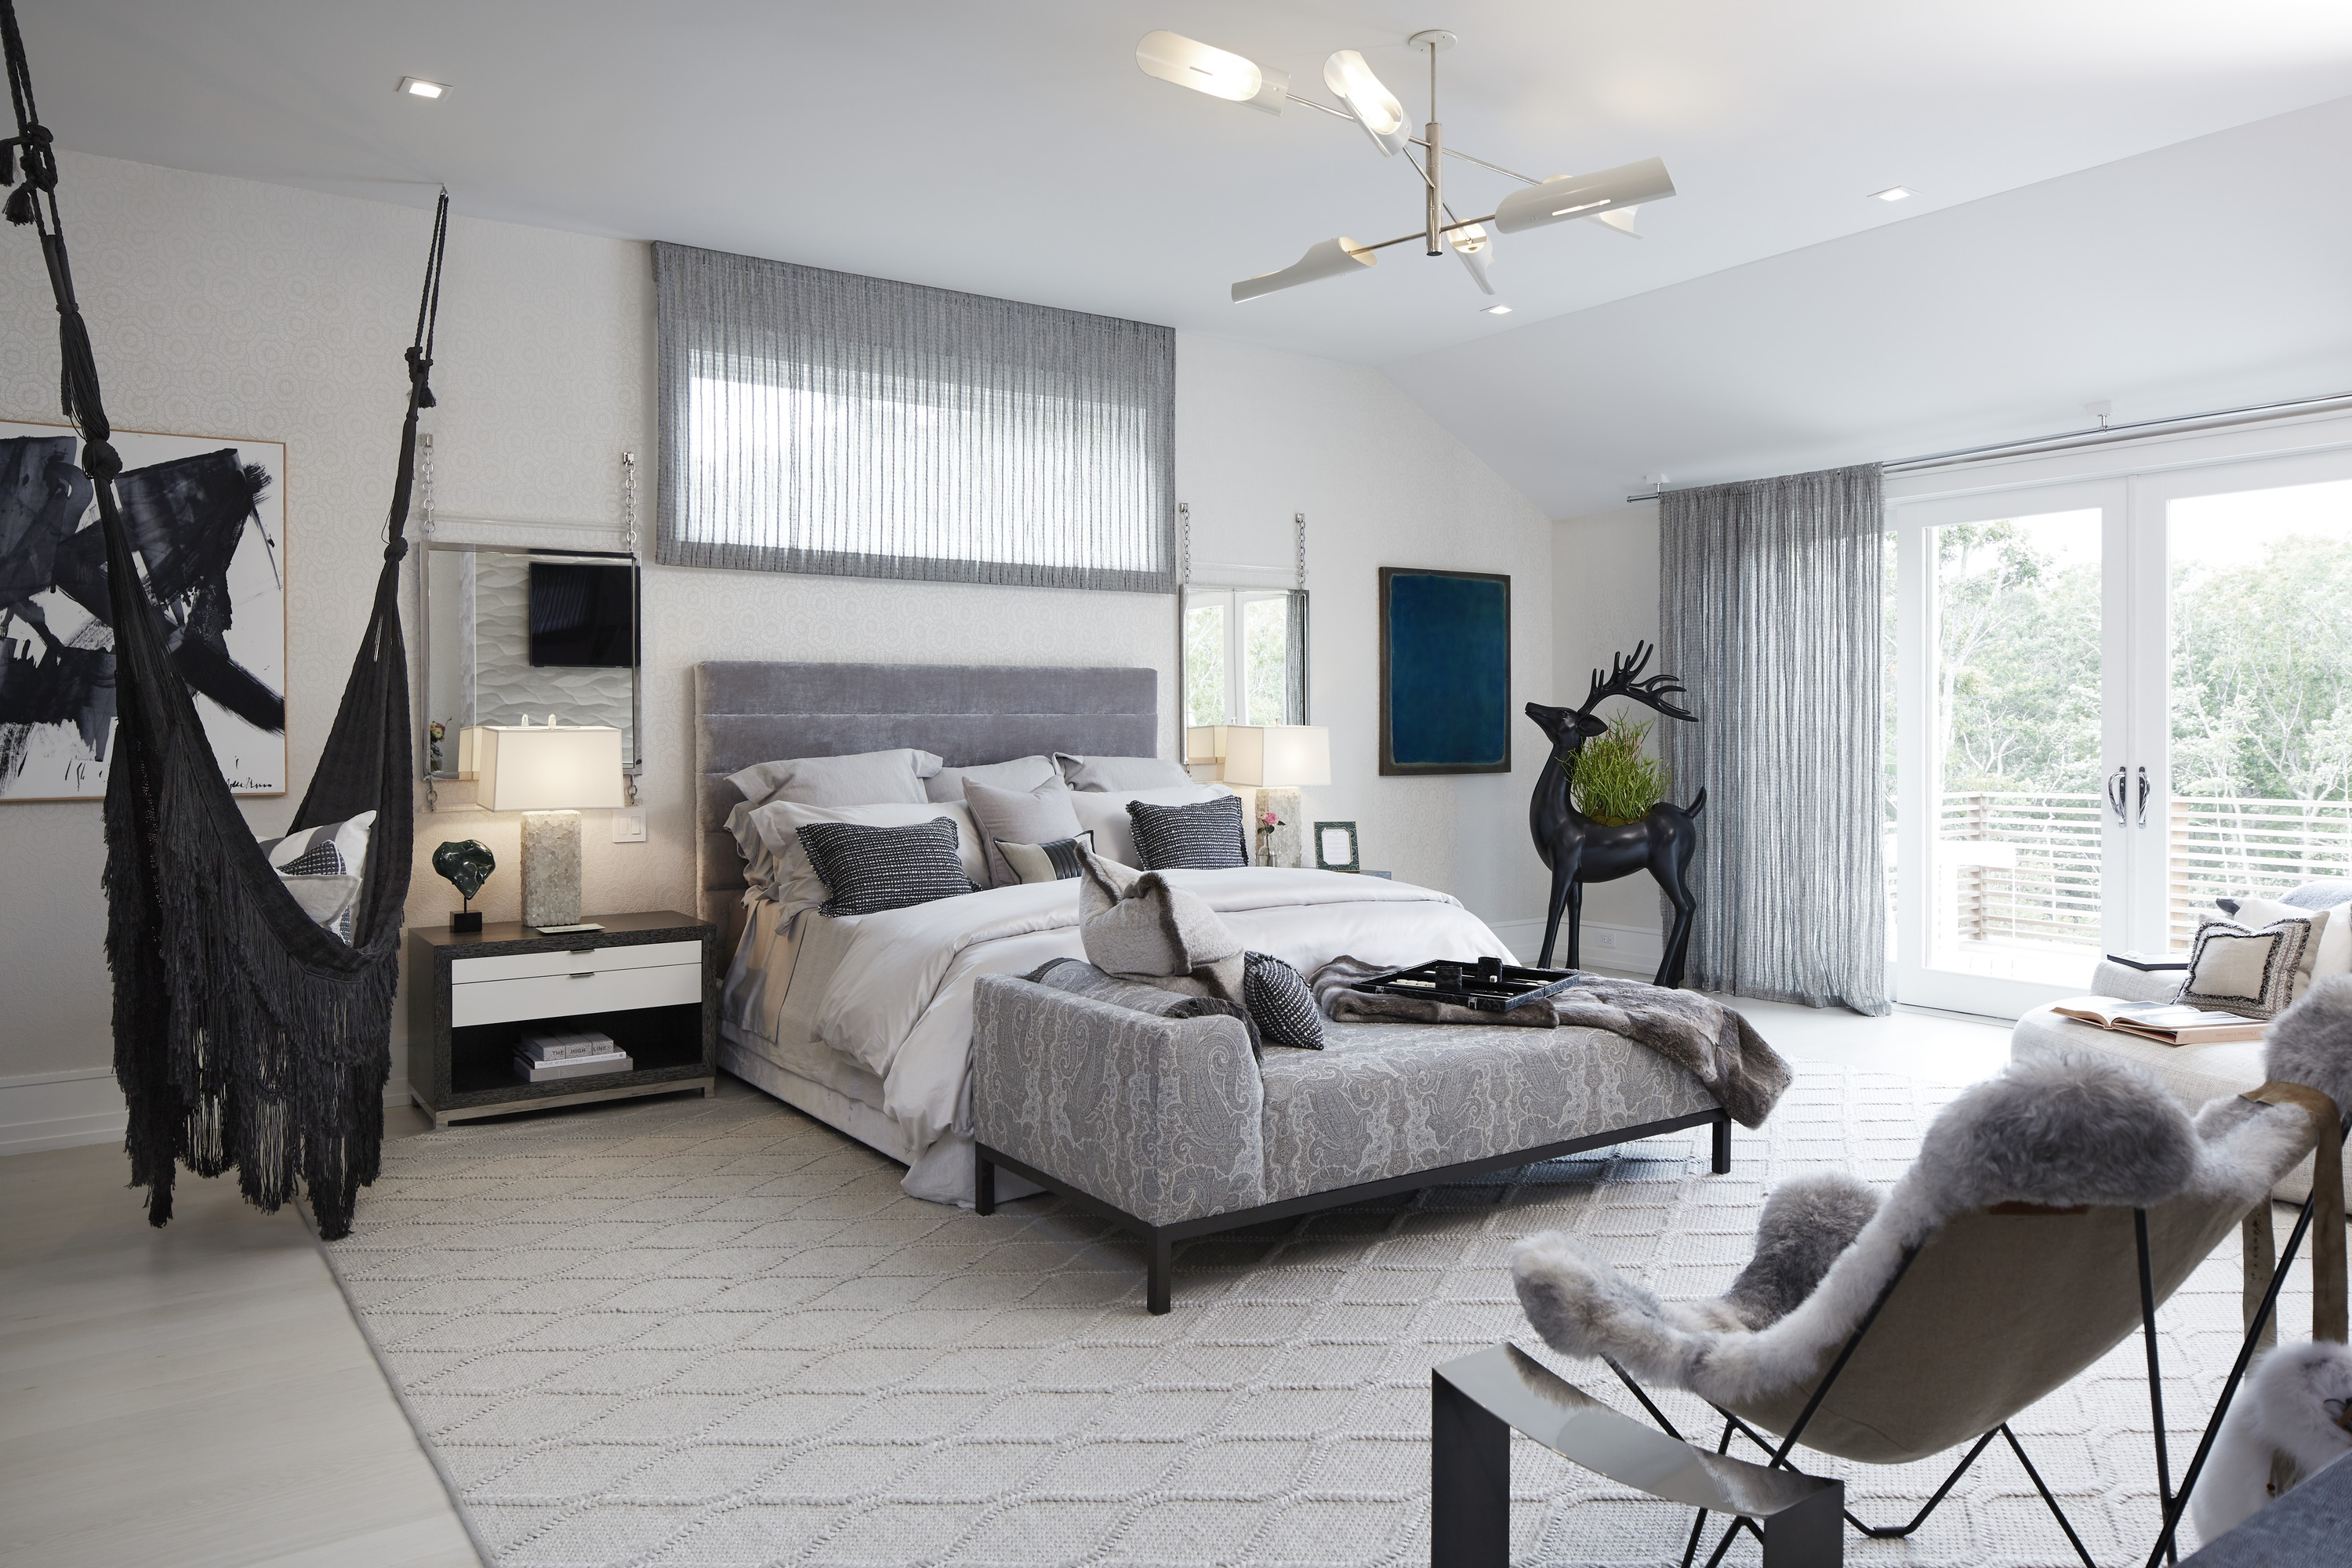 The second-floor master bedroom is all about soft edges and sumptuous textures, a nest of neutral greys and off-whites. Bold black accents bring a vibrant richness to the space.